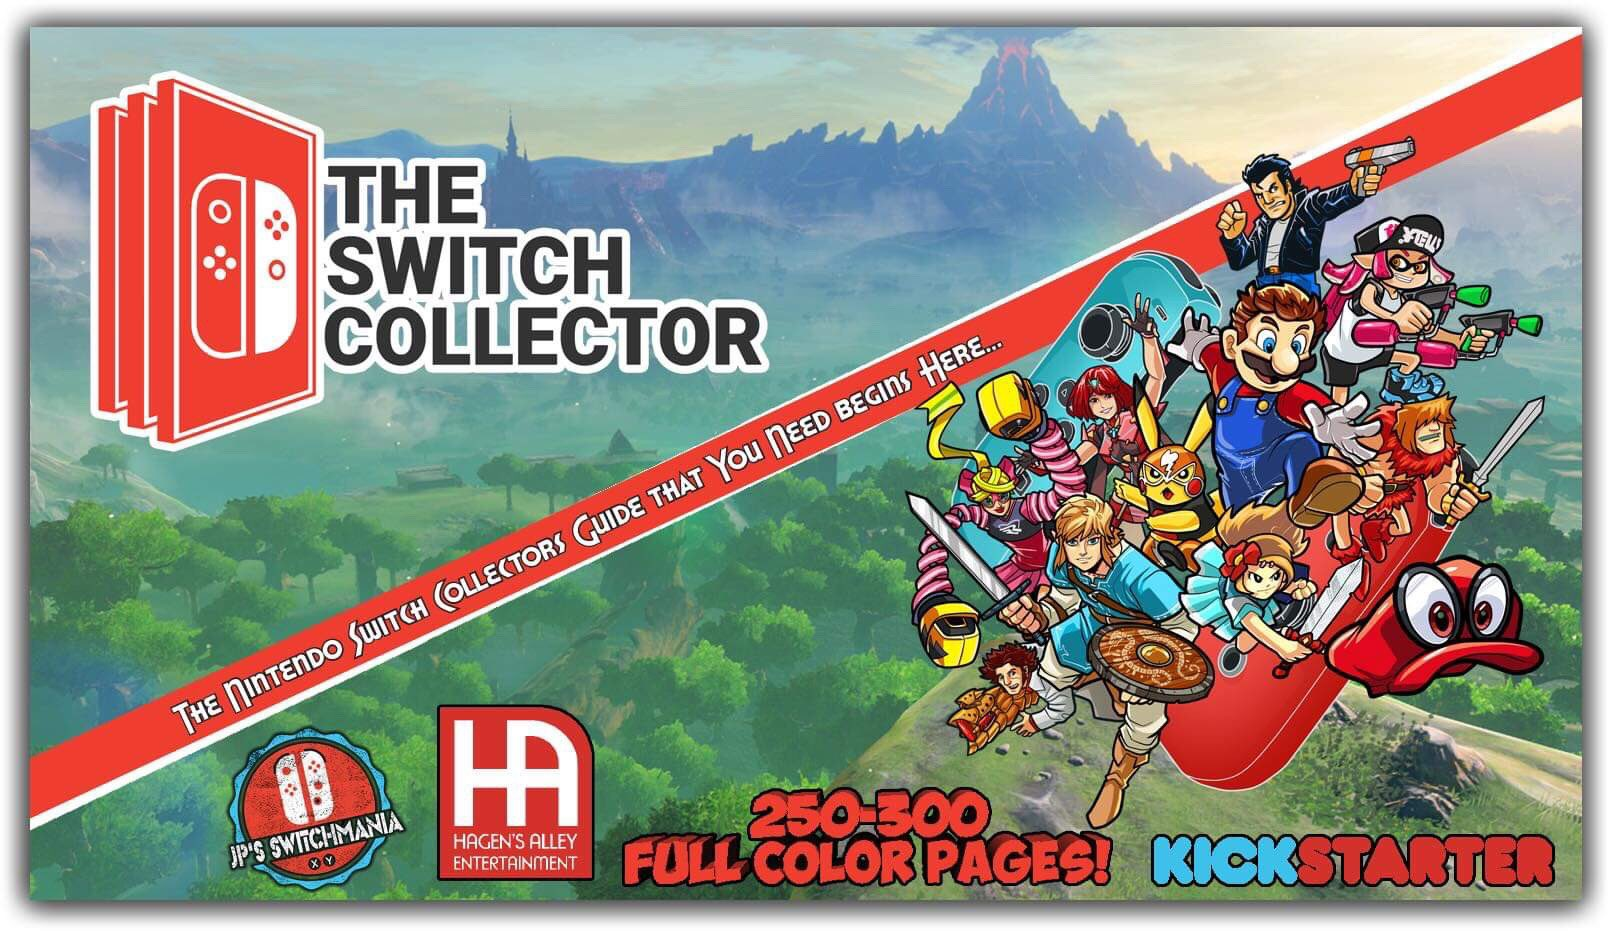 The Switch Collector Kickstarter Ends This Week